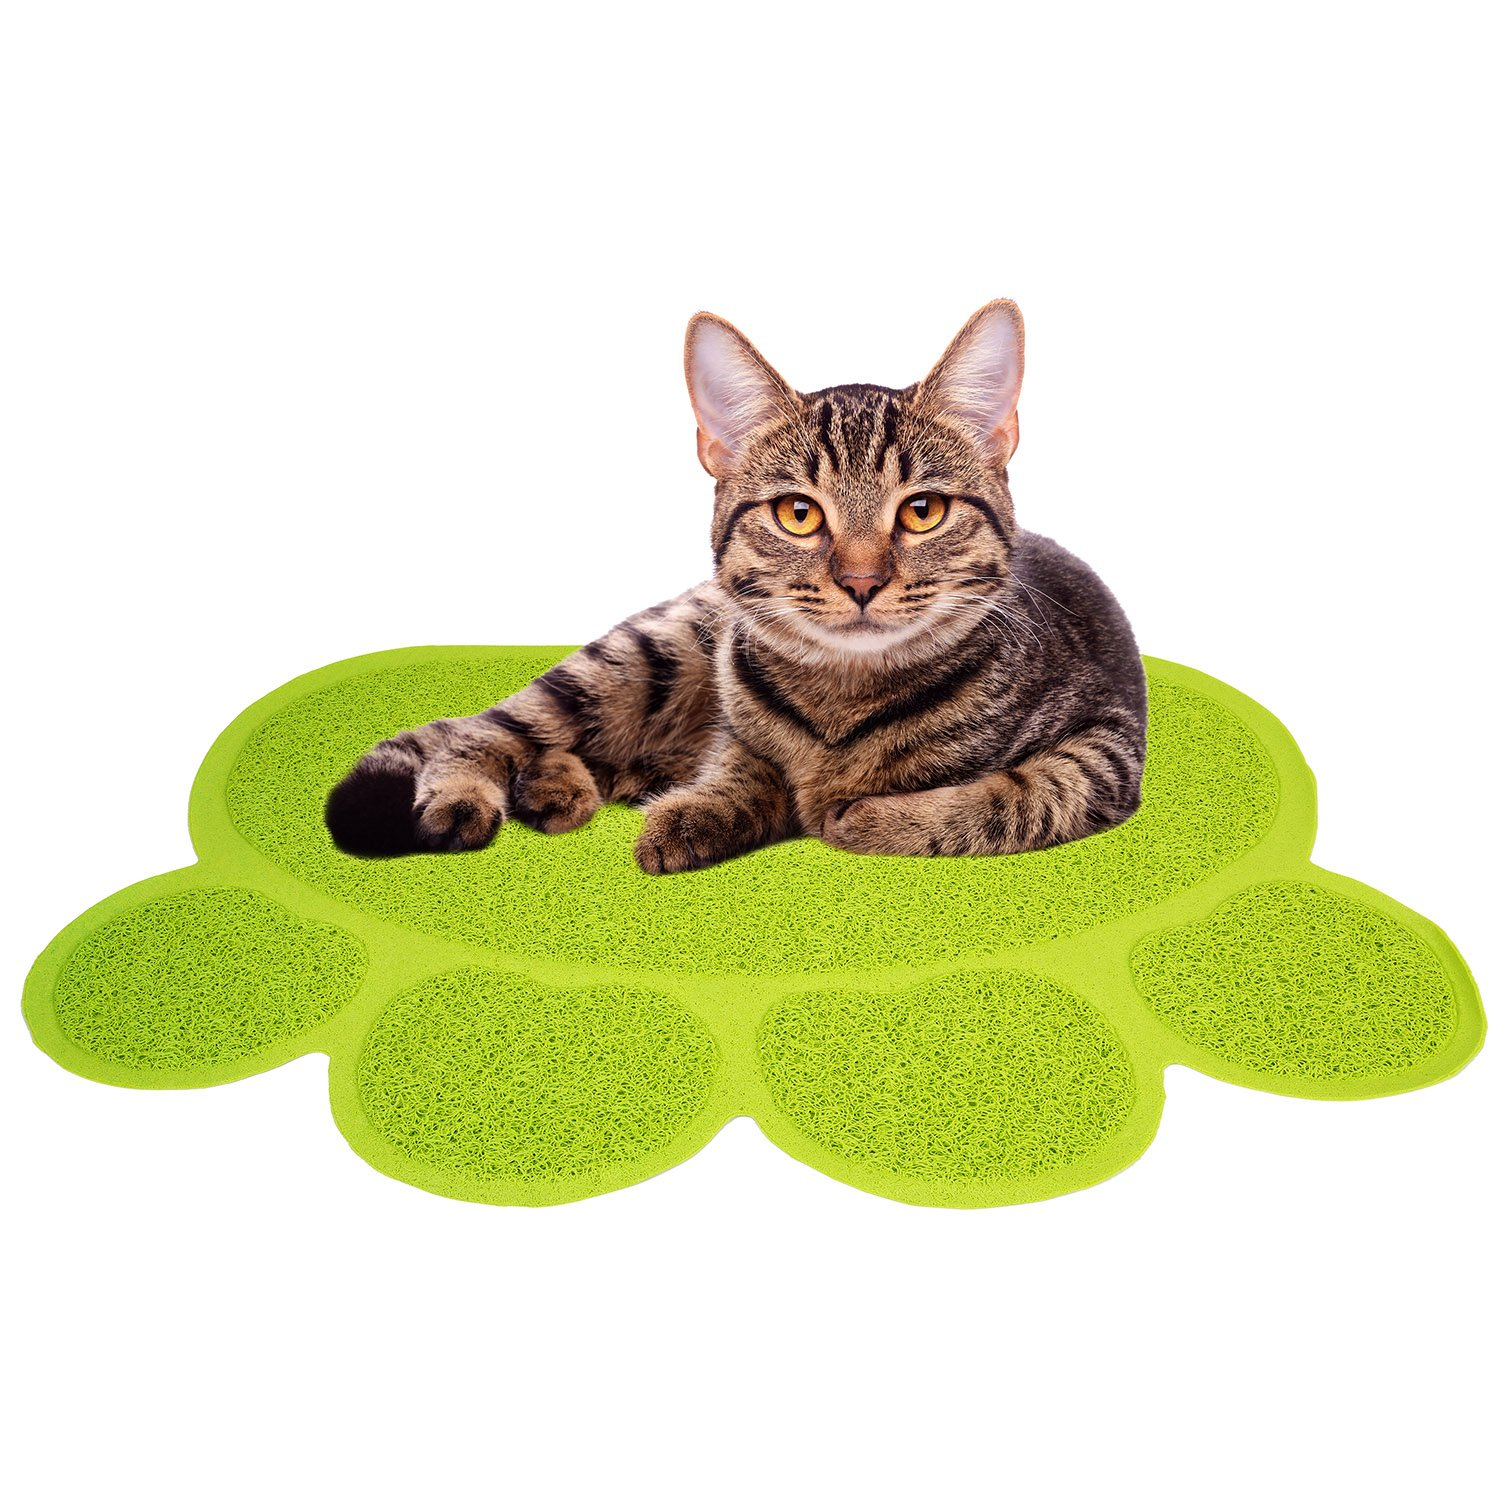 Jumbl Smartgrip Paw-Shaped Cat Litter Mat – Innovative Grass-Like Material Traps and Catches Litter While Remaining Soft On Paws